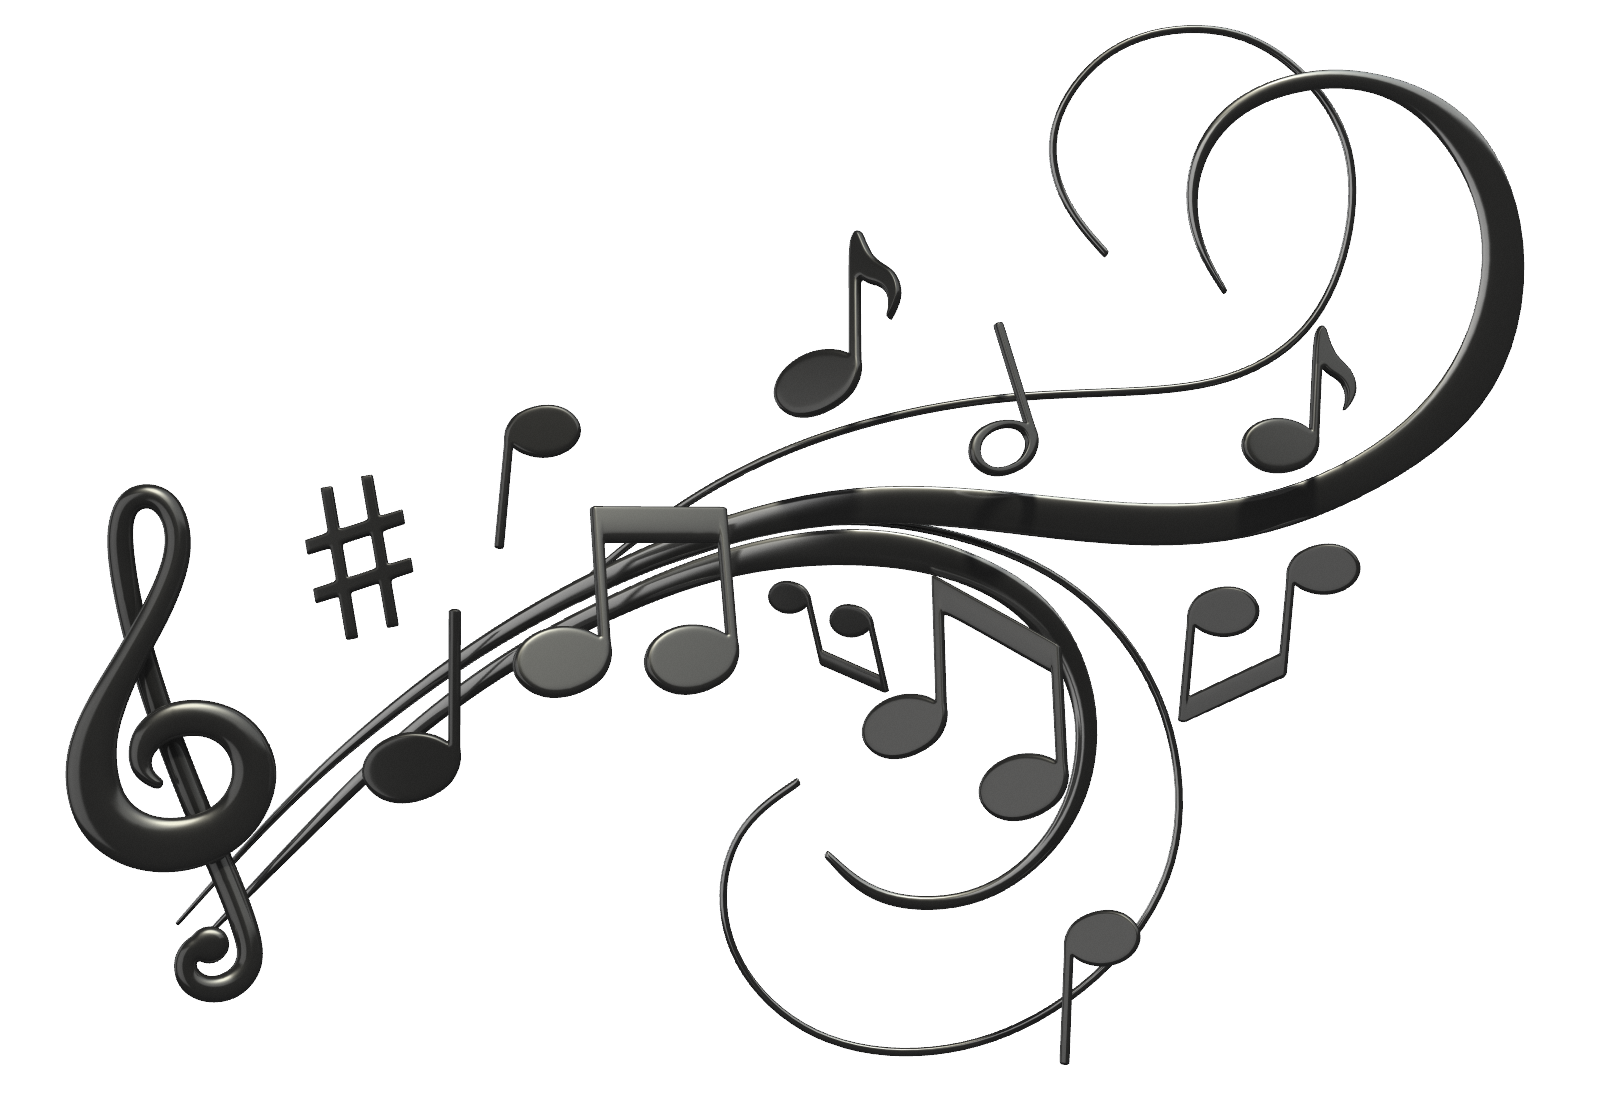 music notes png musical notes png transparent musical notes images #10043